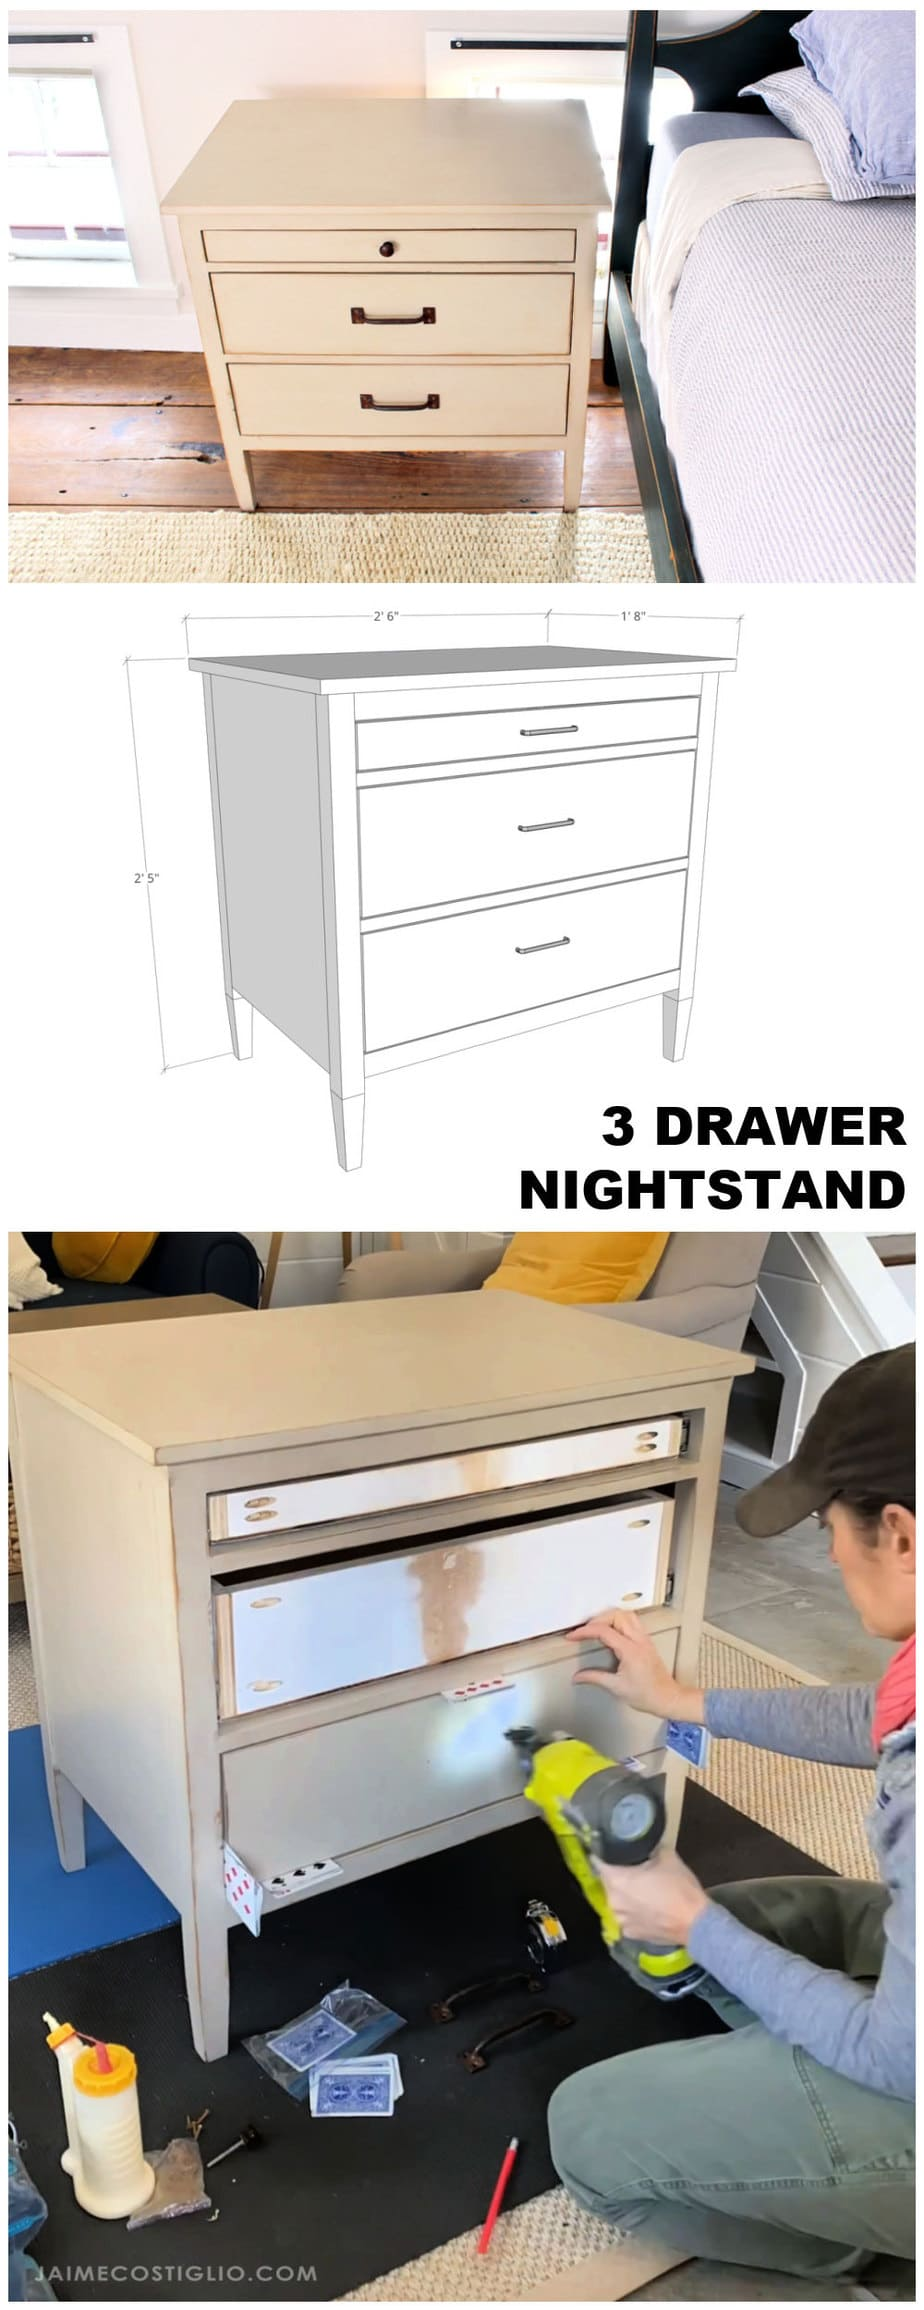 3 drawer nightstand plans